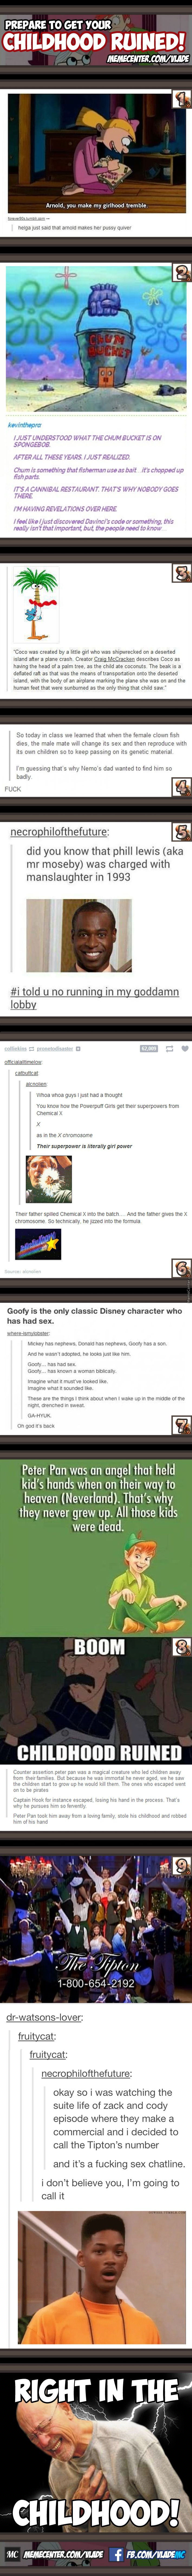 Boom... right in the childhood. Ouch.